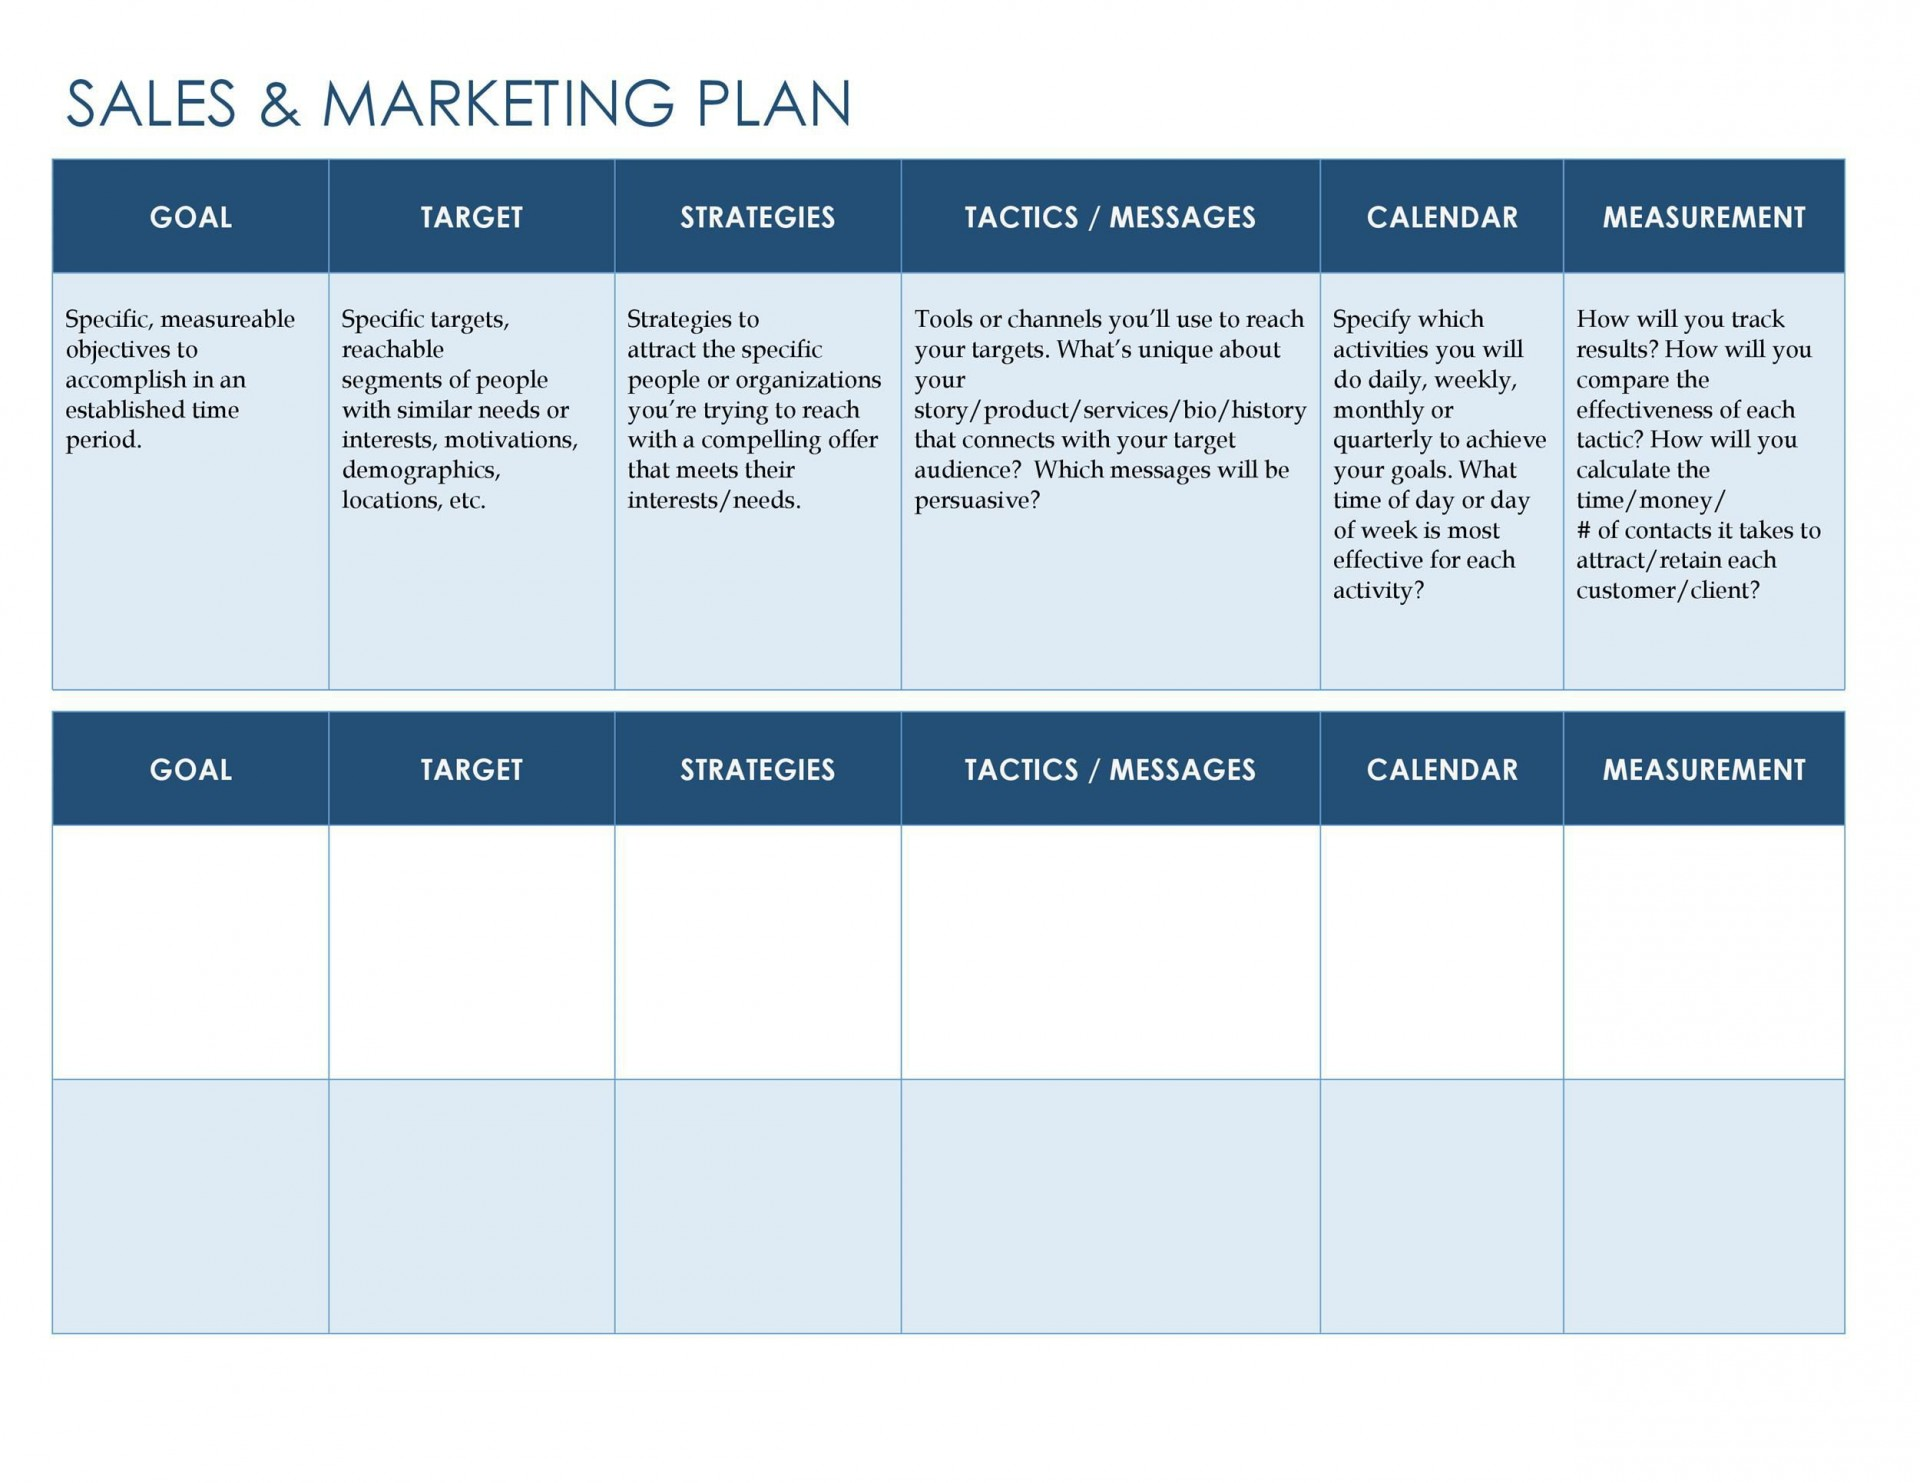 002 Fearsome Hotel Sale And Marketing Action Plan Template High Resolution 1920